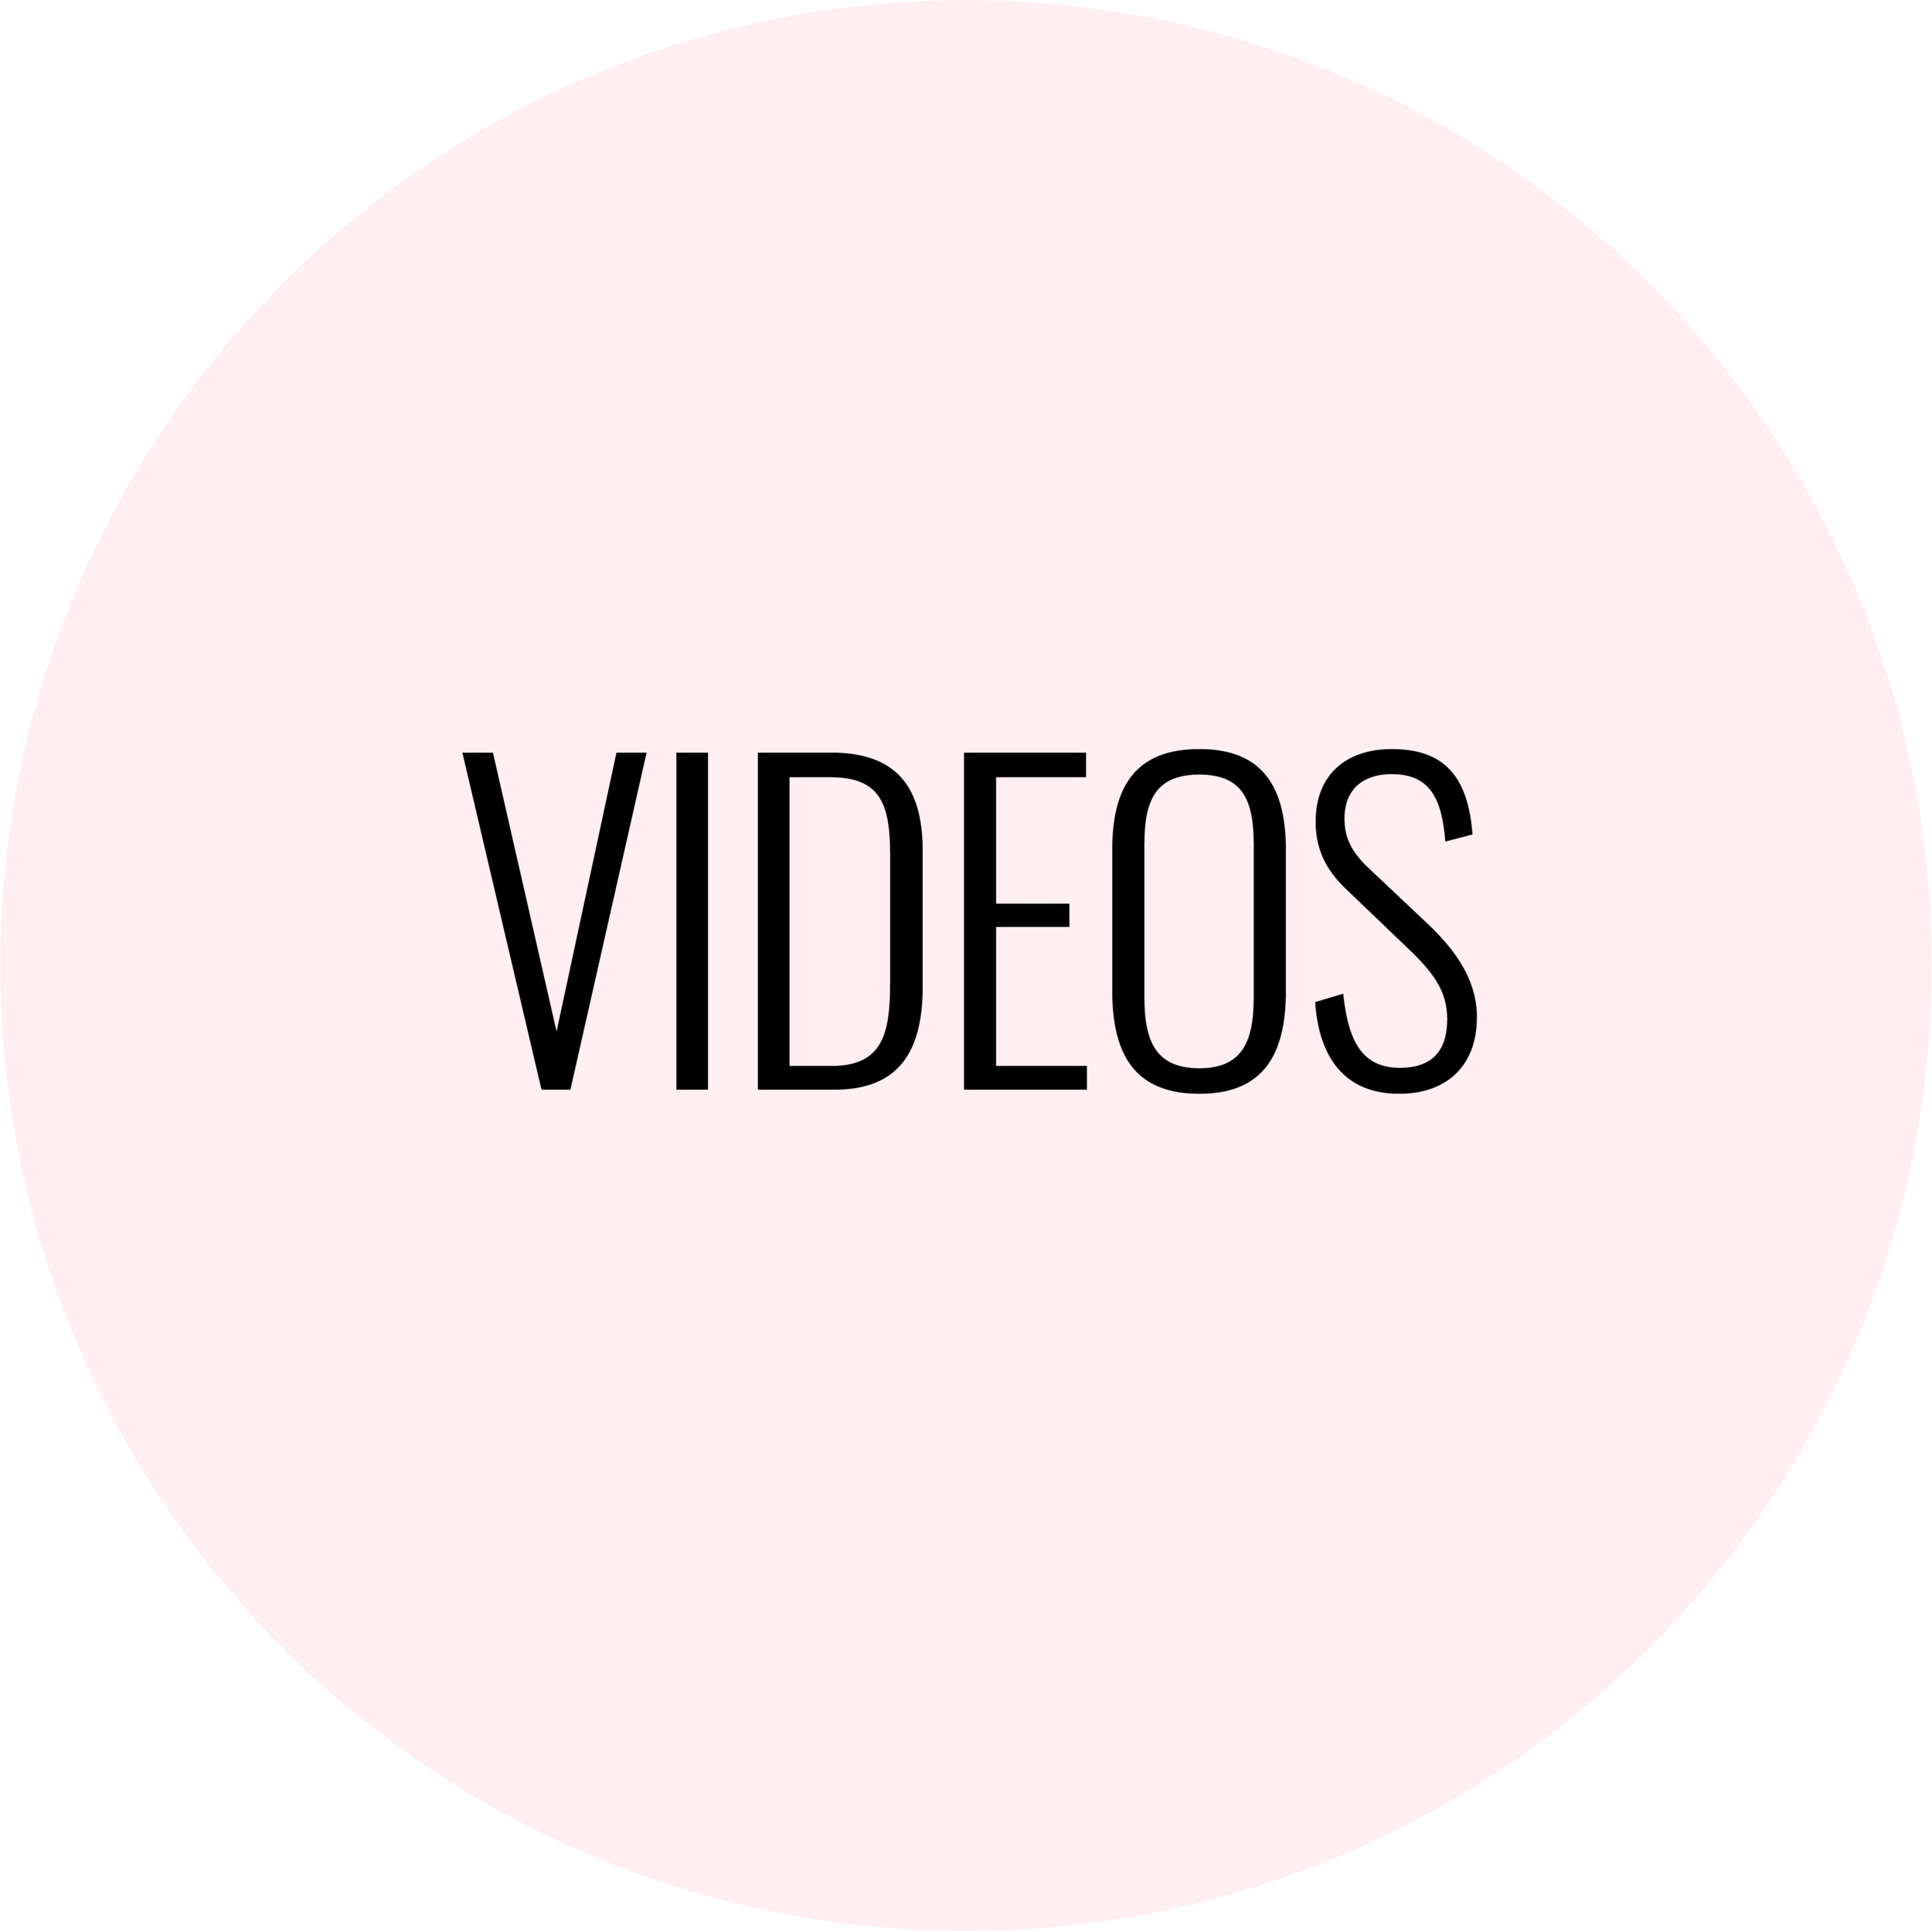 alicia-oliveri-professional-make-up-artist-new-york-city-video-button.png